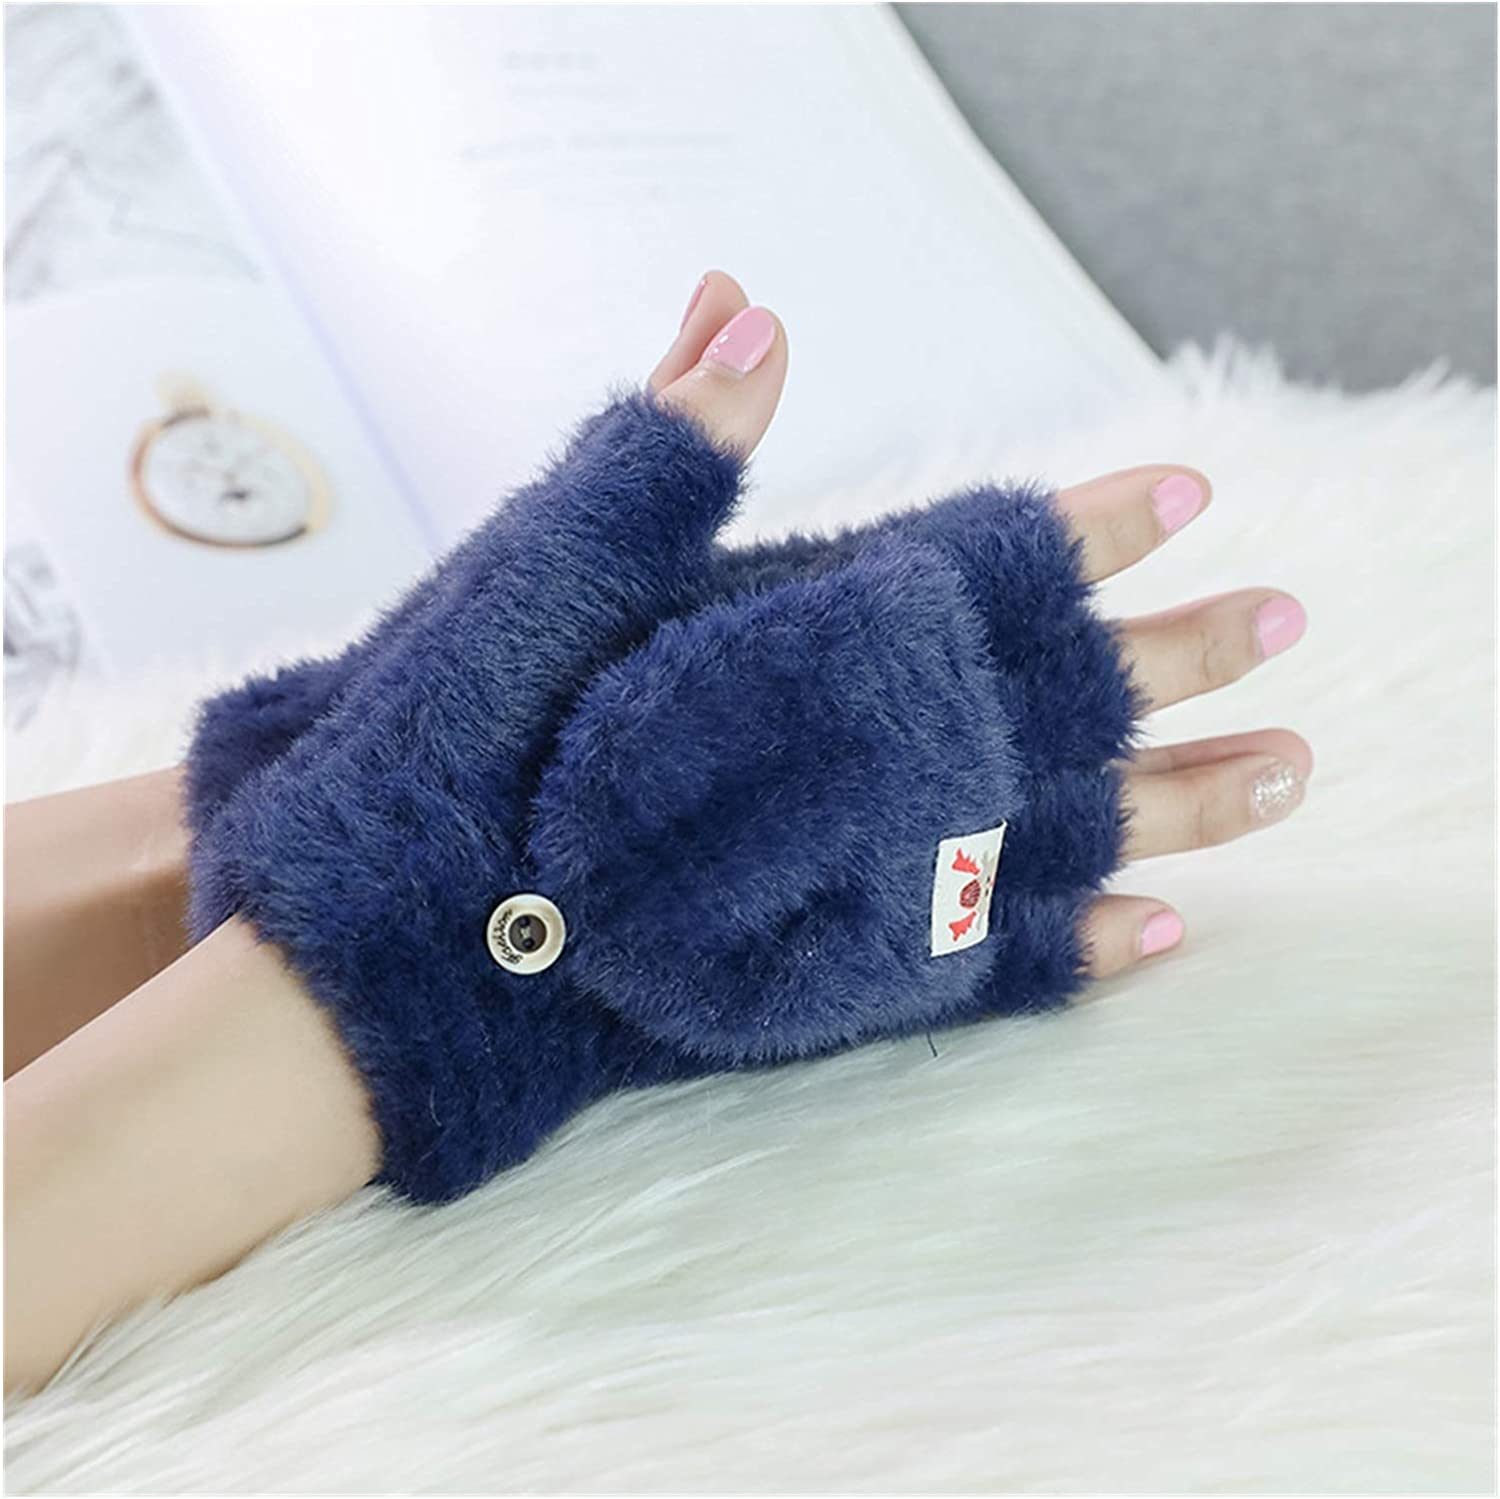 XIAOQIU Gloves Women's Winter Warm Gloves Touch Screen Gloves Cute Fingerless Gloves Knitted Fluff Outdoor Flip Cover Gloves Mittens (Color : Navy, Gloves Size : T)